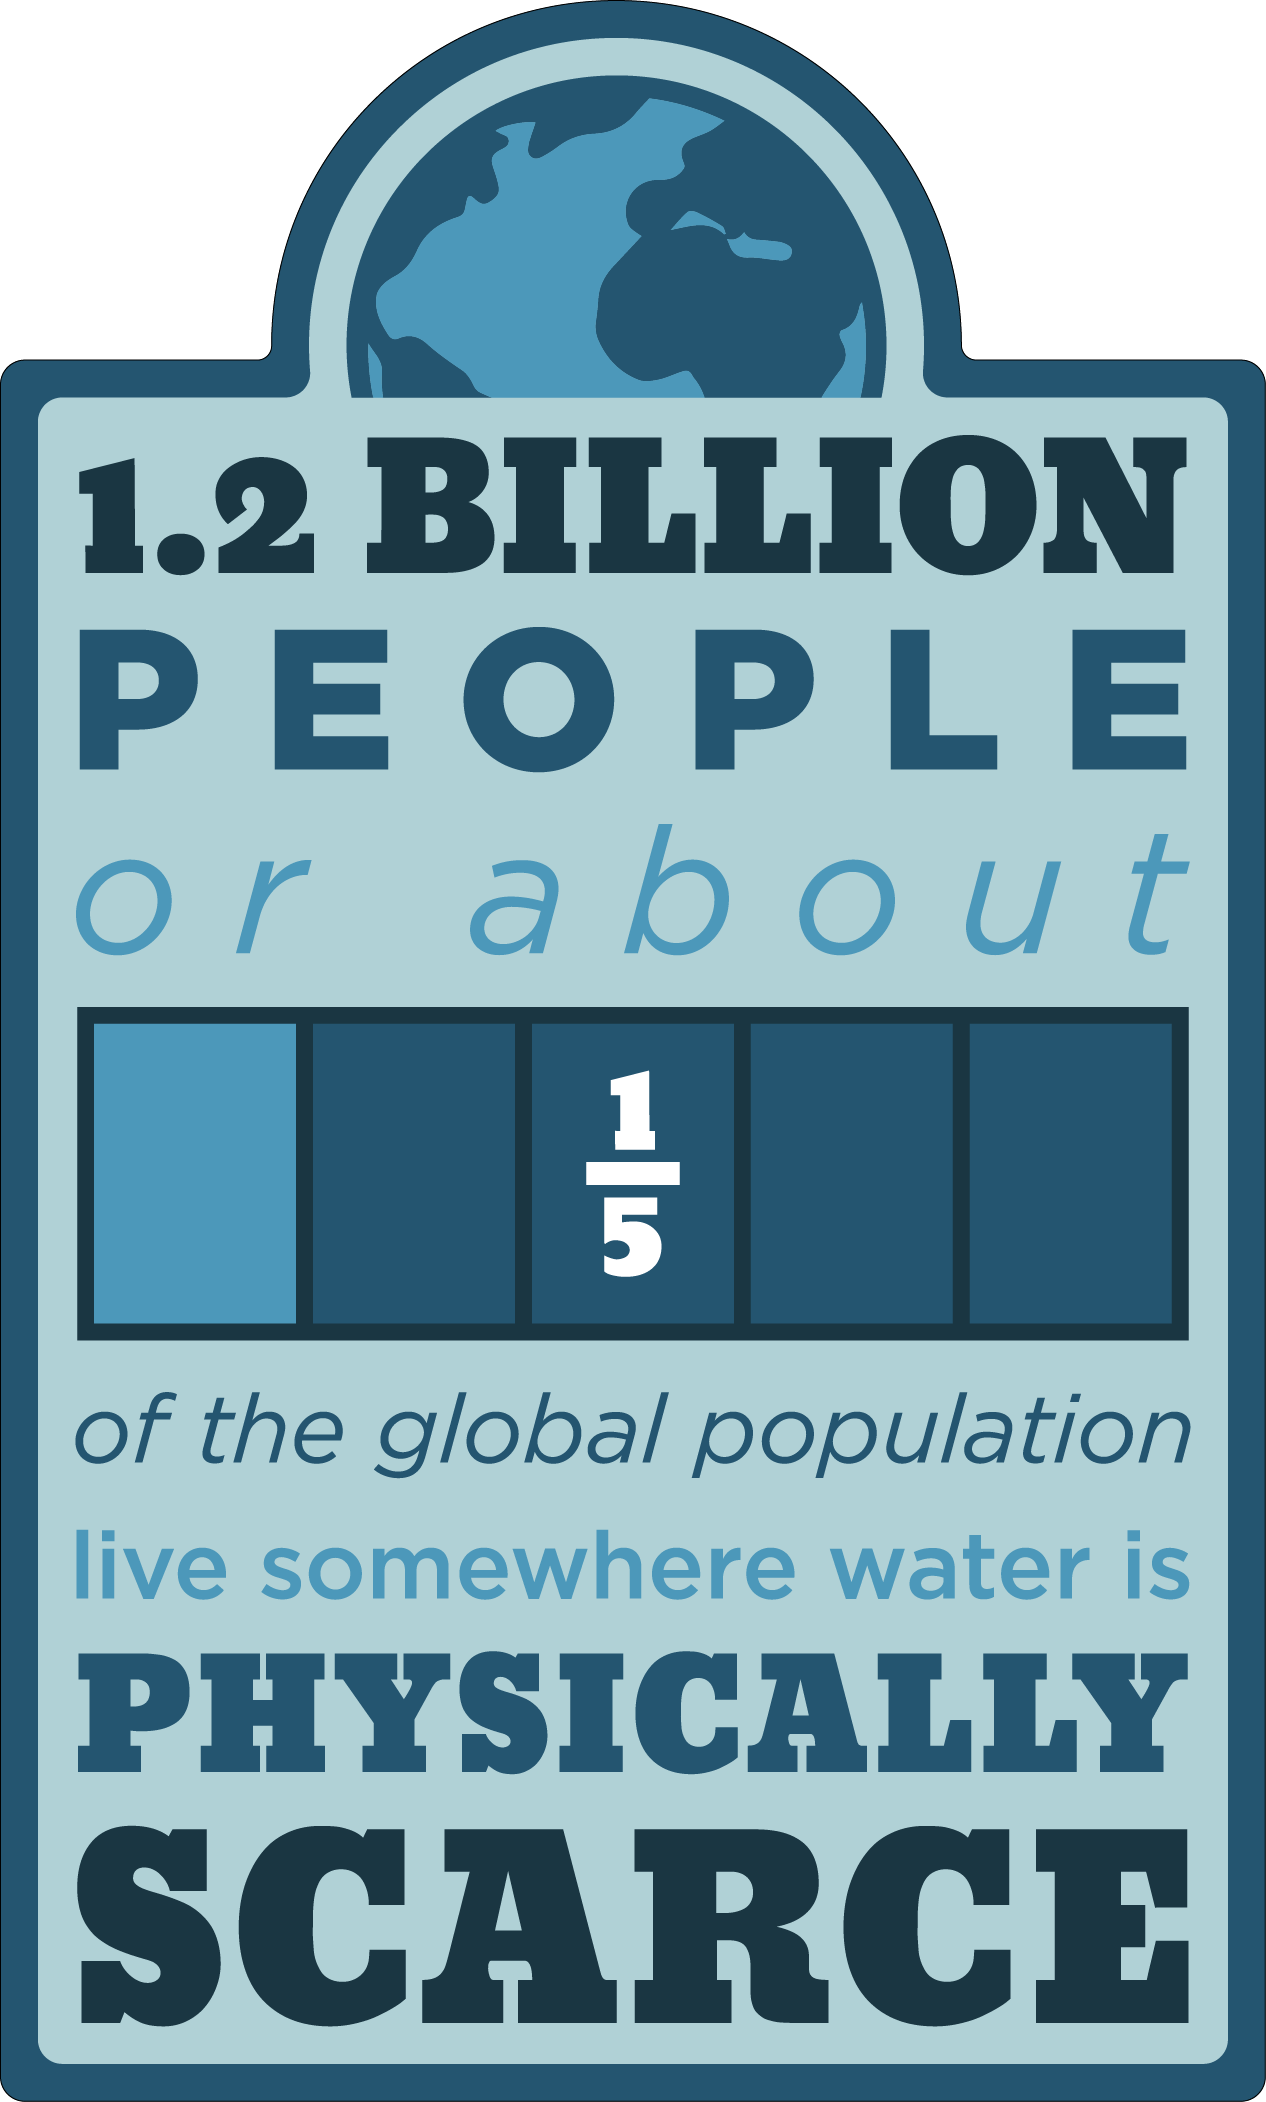 One-fifth-of-global-population-live-where-water-is-scarce